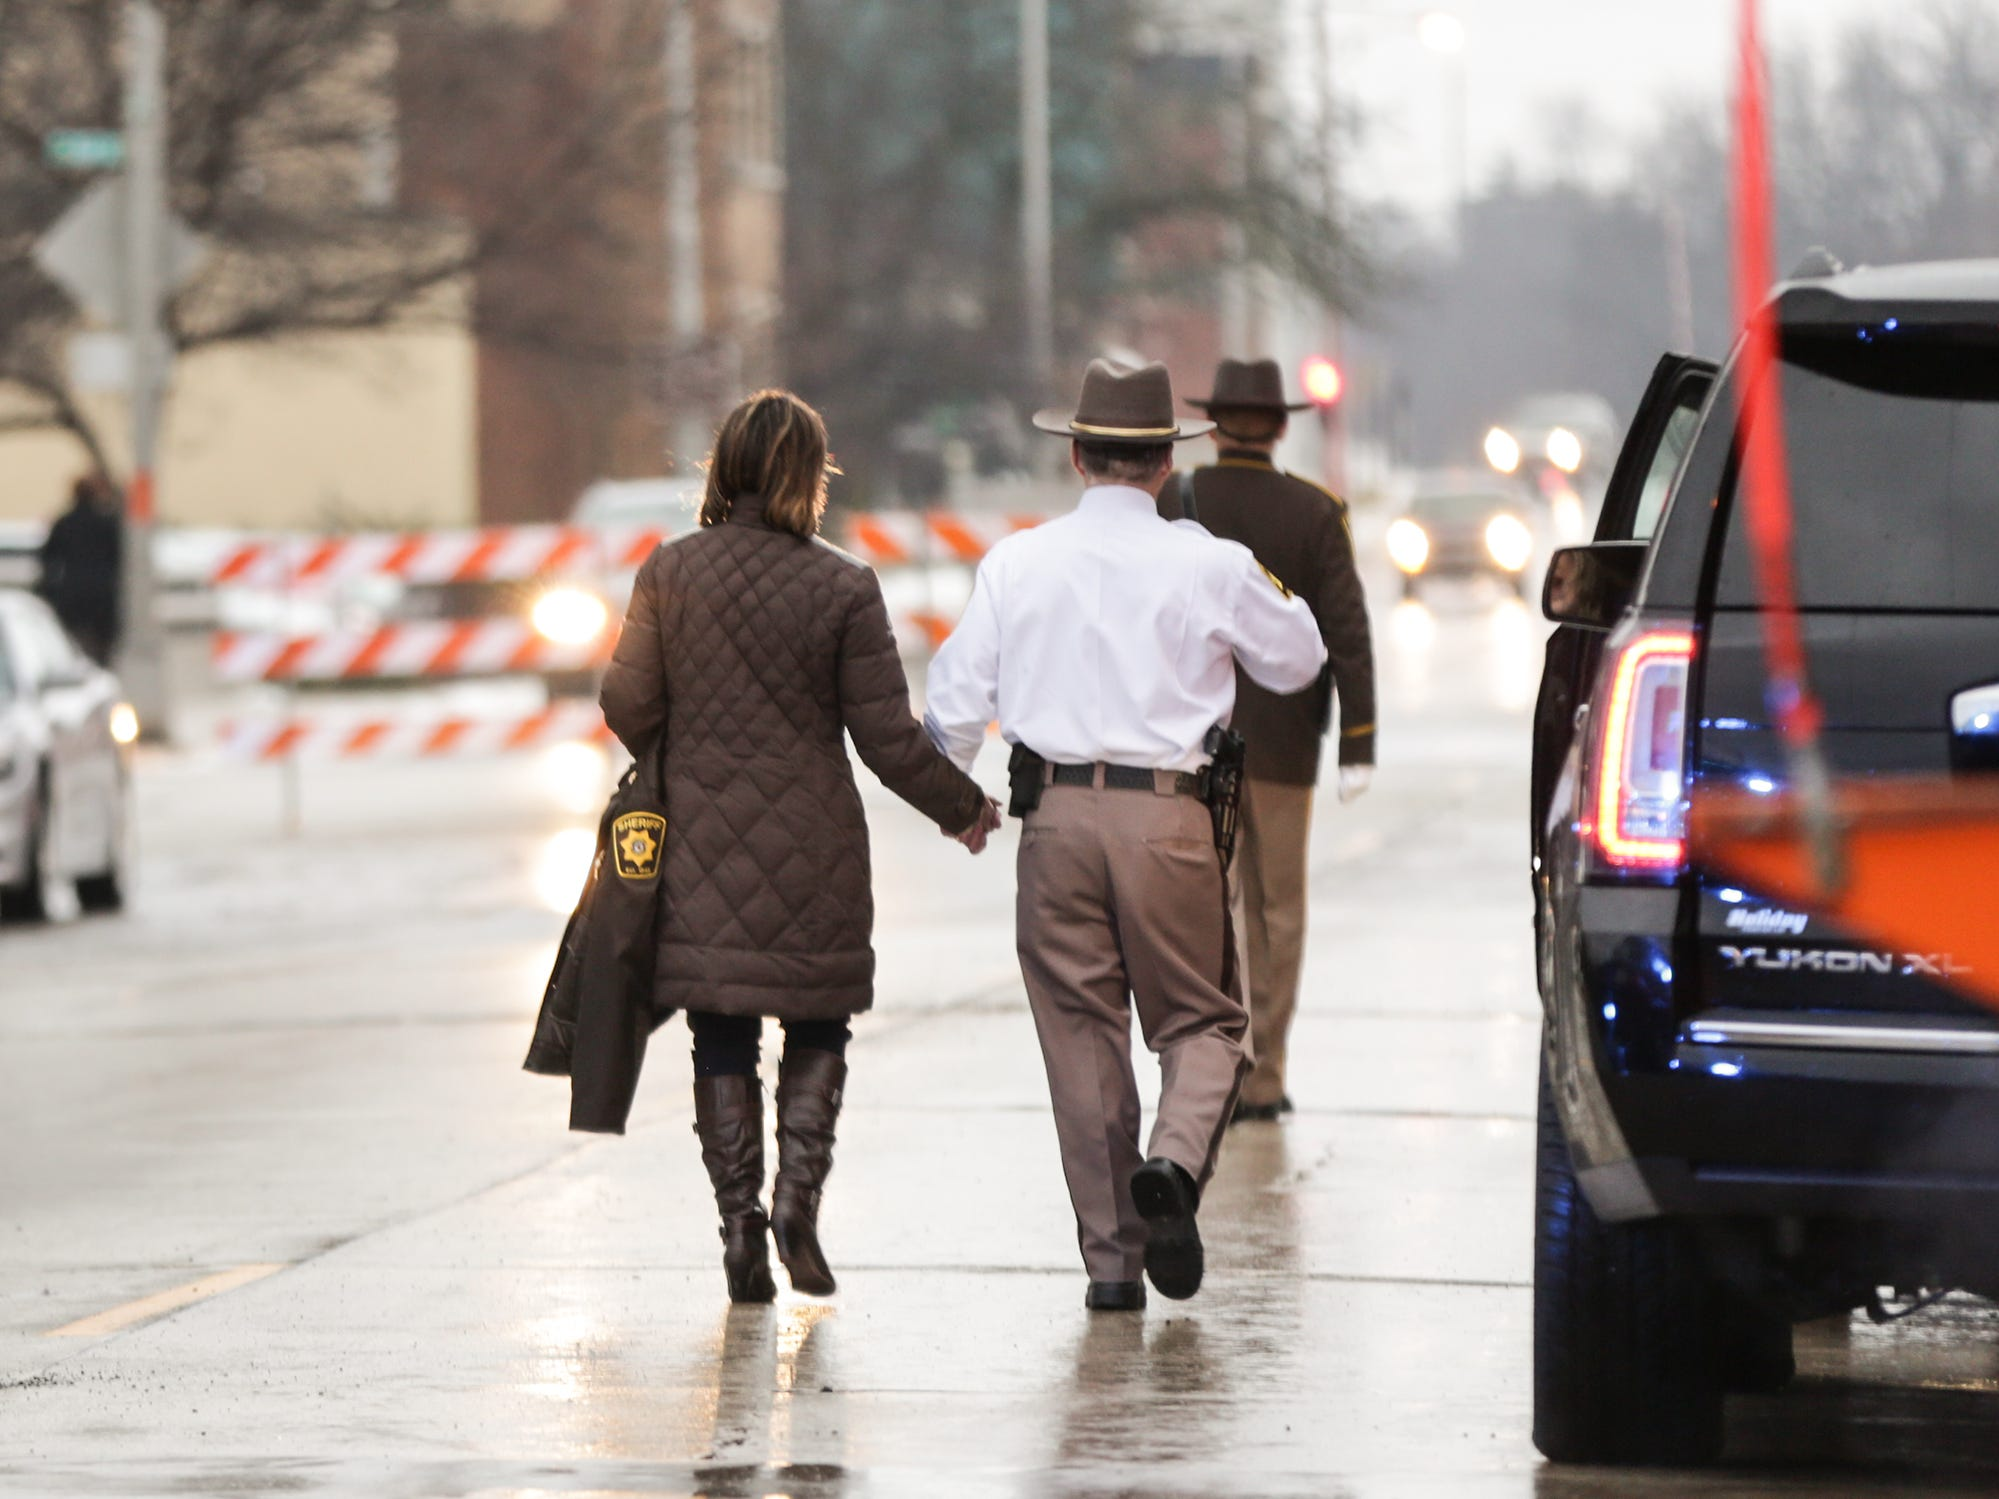 Newly retired Fond du Lac County Sheriff Mick Fink (right) walks with his wife Mickie after taking part in the ramp walk ceremony Monday, January 7, 2019 outside the sheriff's office in Fond du Lac, Wisconsin. Fink retired from the position of Fond du Lac County Sheriff after serving for 12 years. Submitted by Roxanne Abler/USA TODAY NETWORK-Wisconsin